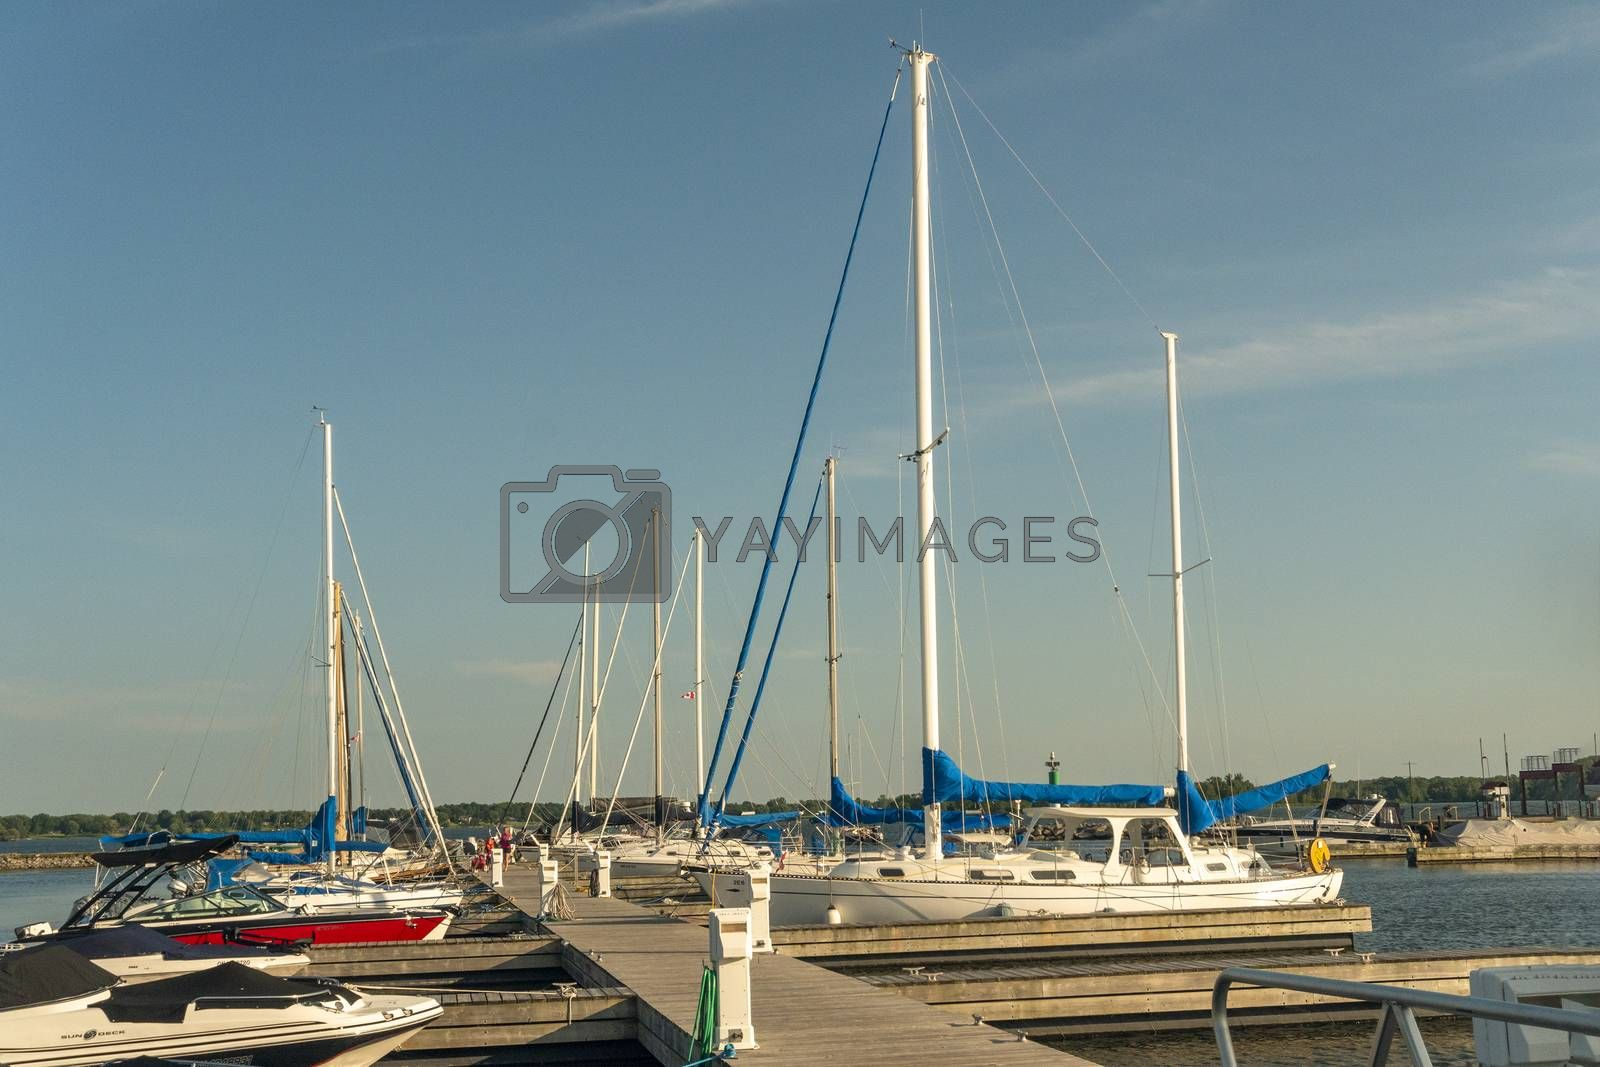 On the river near the city in a small bay there is a pier for water transport of yachts  and boats